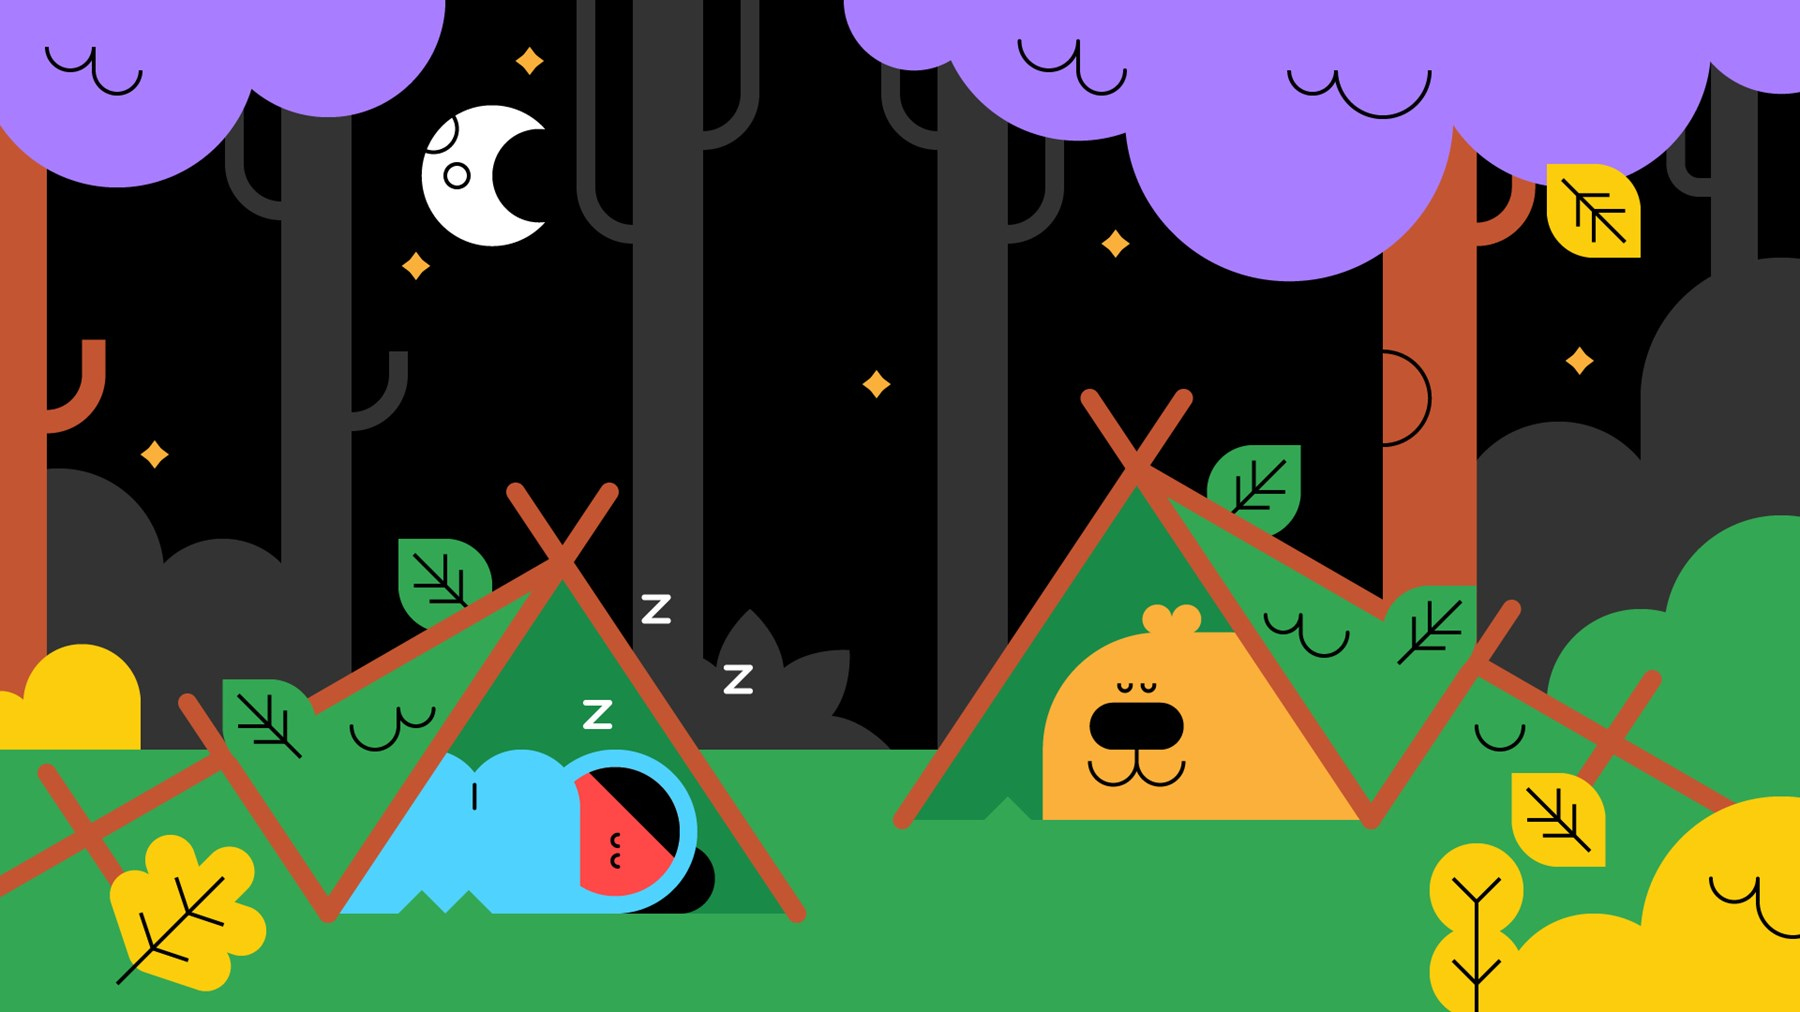 Buddy the dog and a Scout sleeping in tents under the stars.